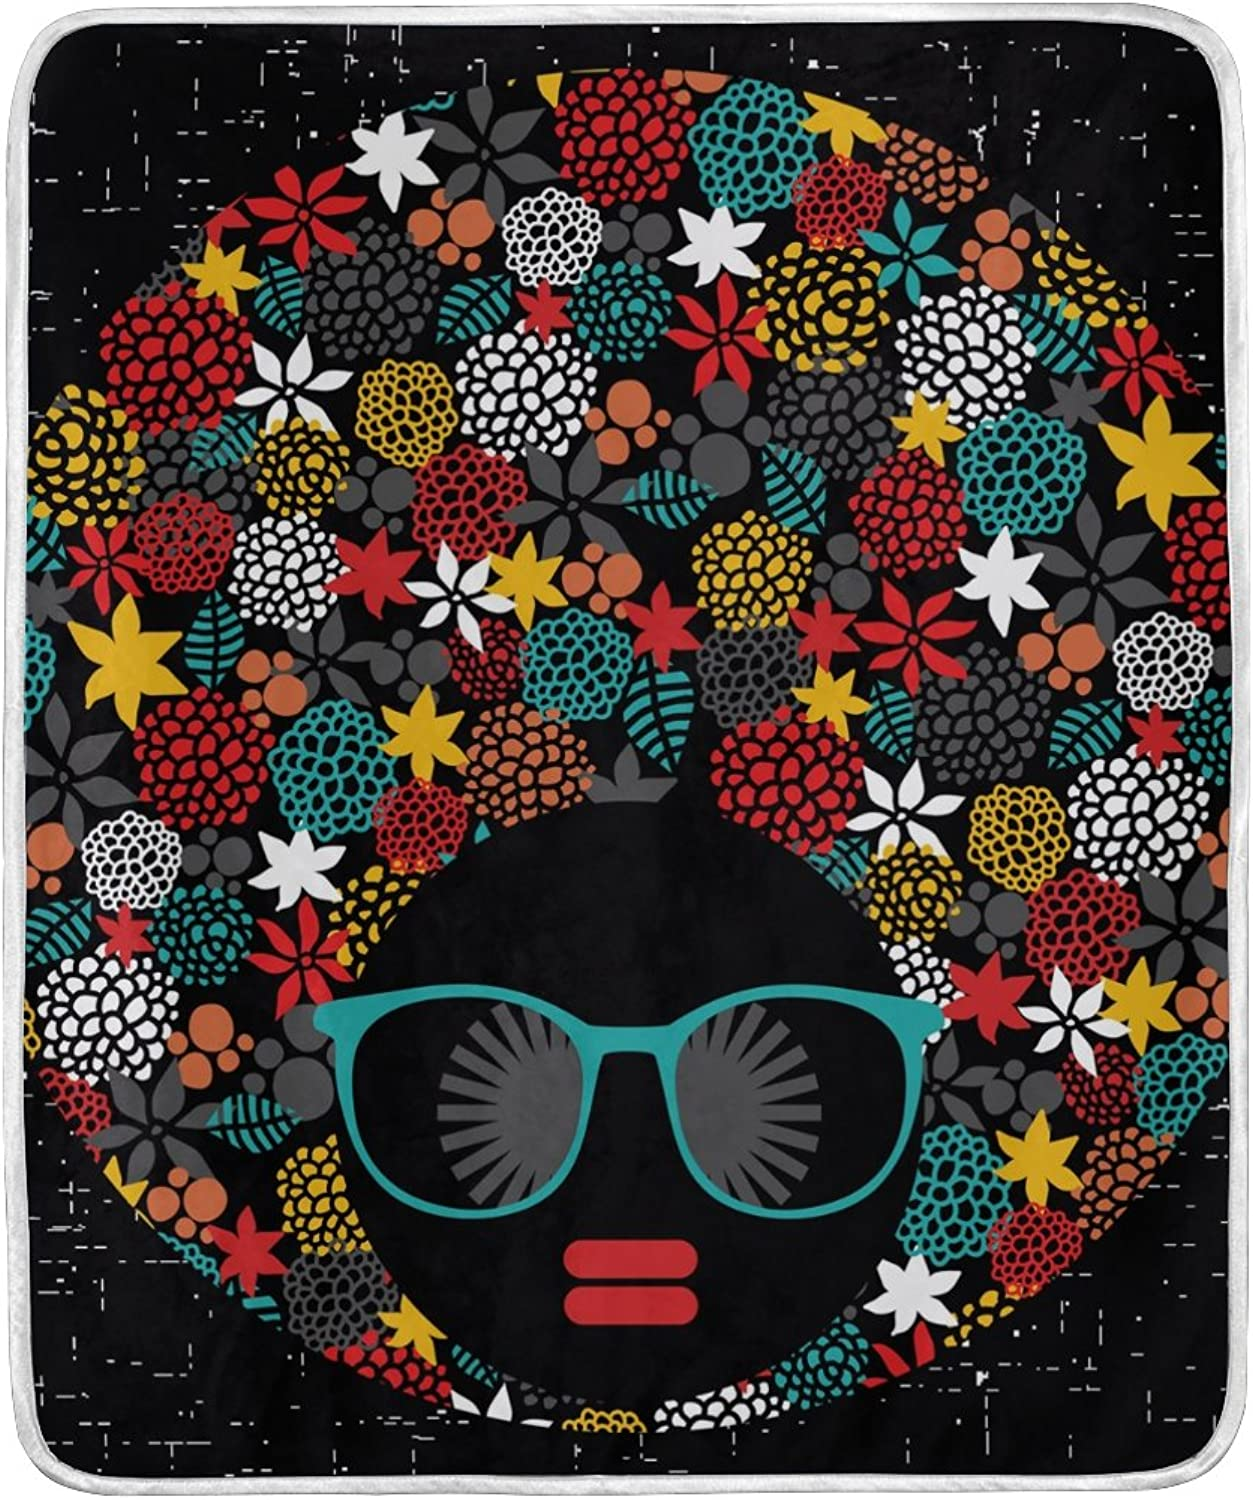 ALIREA Hippie Black Head Woman with Strange Hair Super Soft Warm Blanket Lightweight Throw Blankets for Bed Couch Sofa Travelling Camping 60 x 50 Inch for Kids Boys Girls